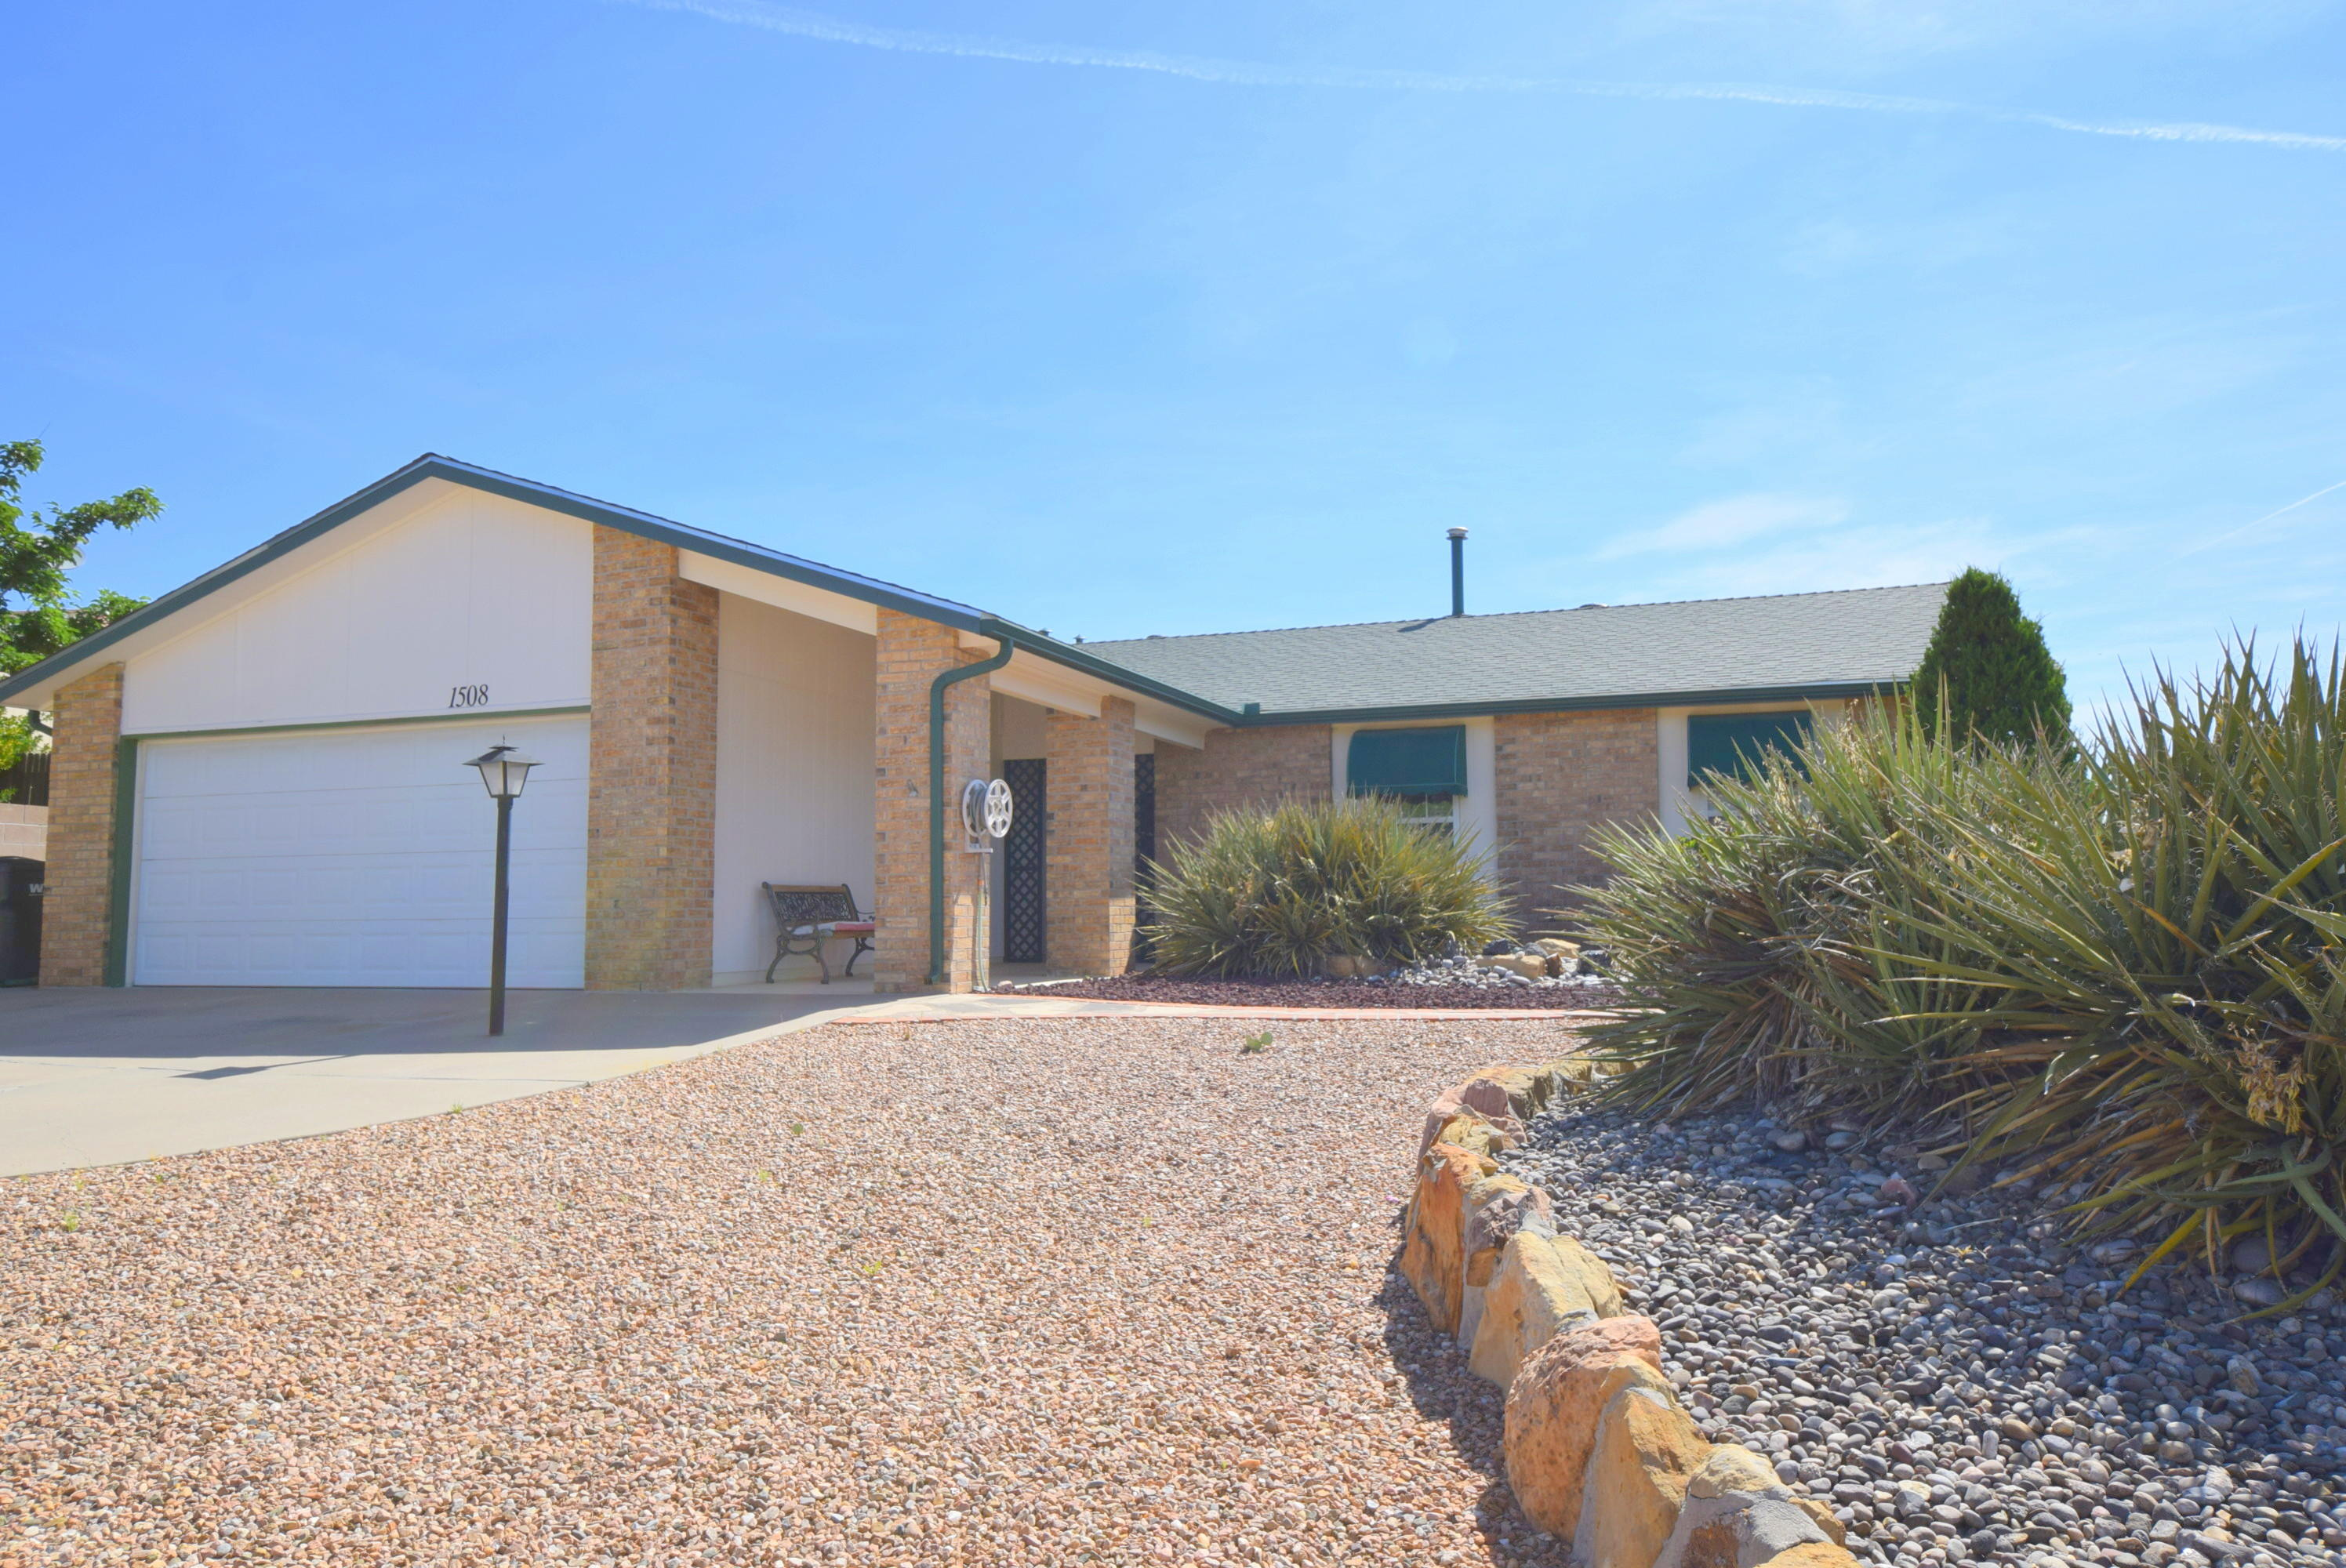 One owner and well cared for Ranch one story home on quiet street, 3 blocks off NM 528.  Huge great room off back of house with 2 large Anderson picture windows showcasing magnificent mountain and city views and fireplace, 20 x 20 outside deck off the greatr oom to enjoy the same views.  Dining room with a pellet fireplace and 3 flat screen wall mounted TVs that convey along with huge mirror that stays.  All appliances convey including the washer and dryer.  Storage shed with electricity stays.